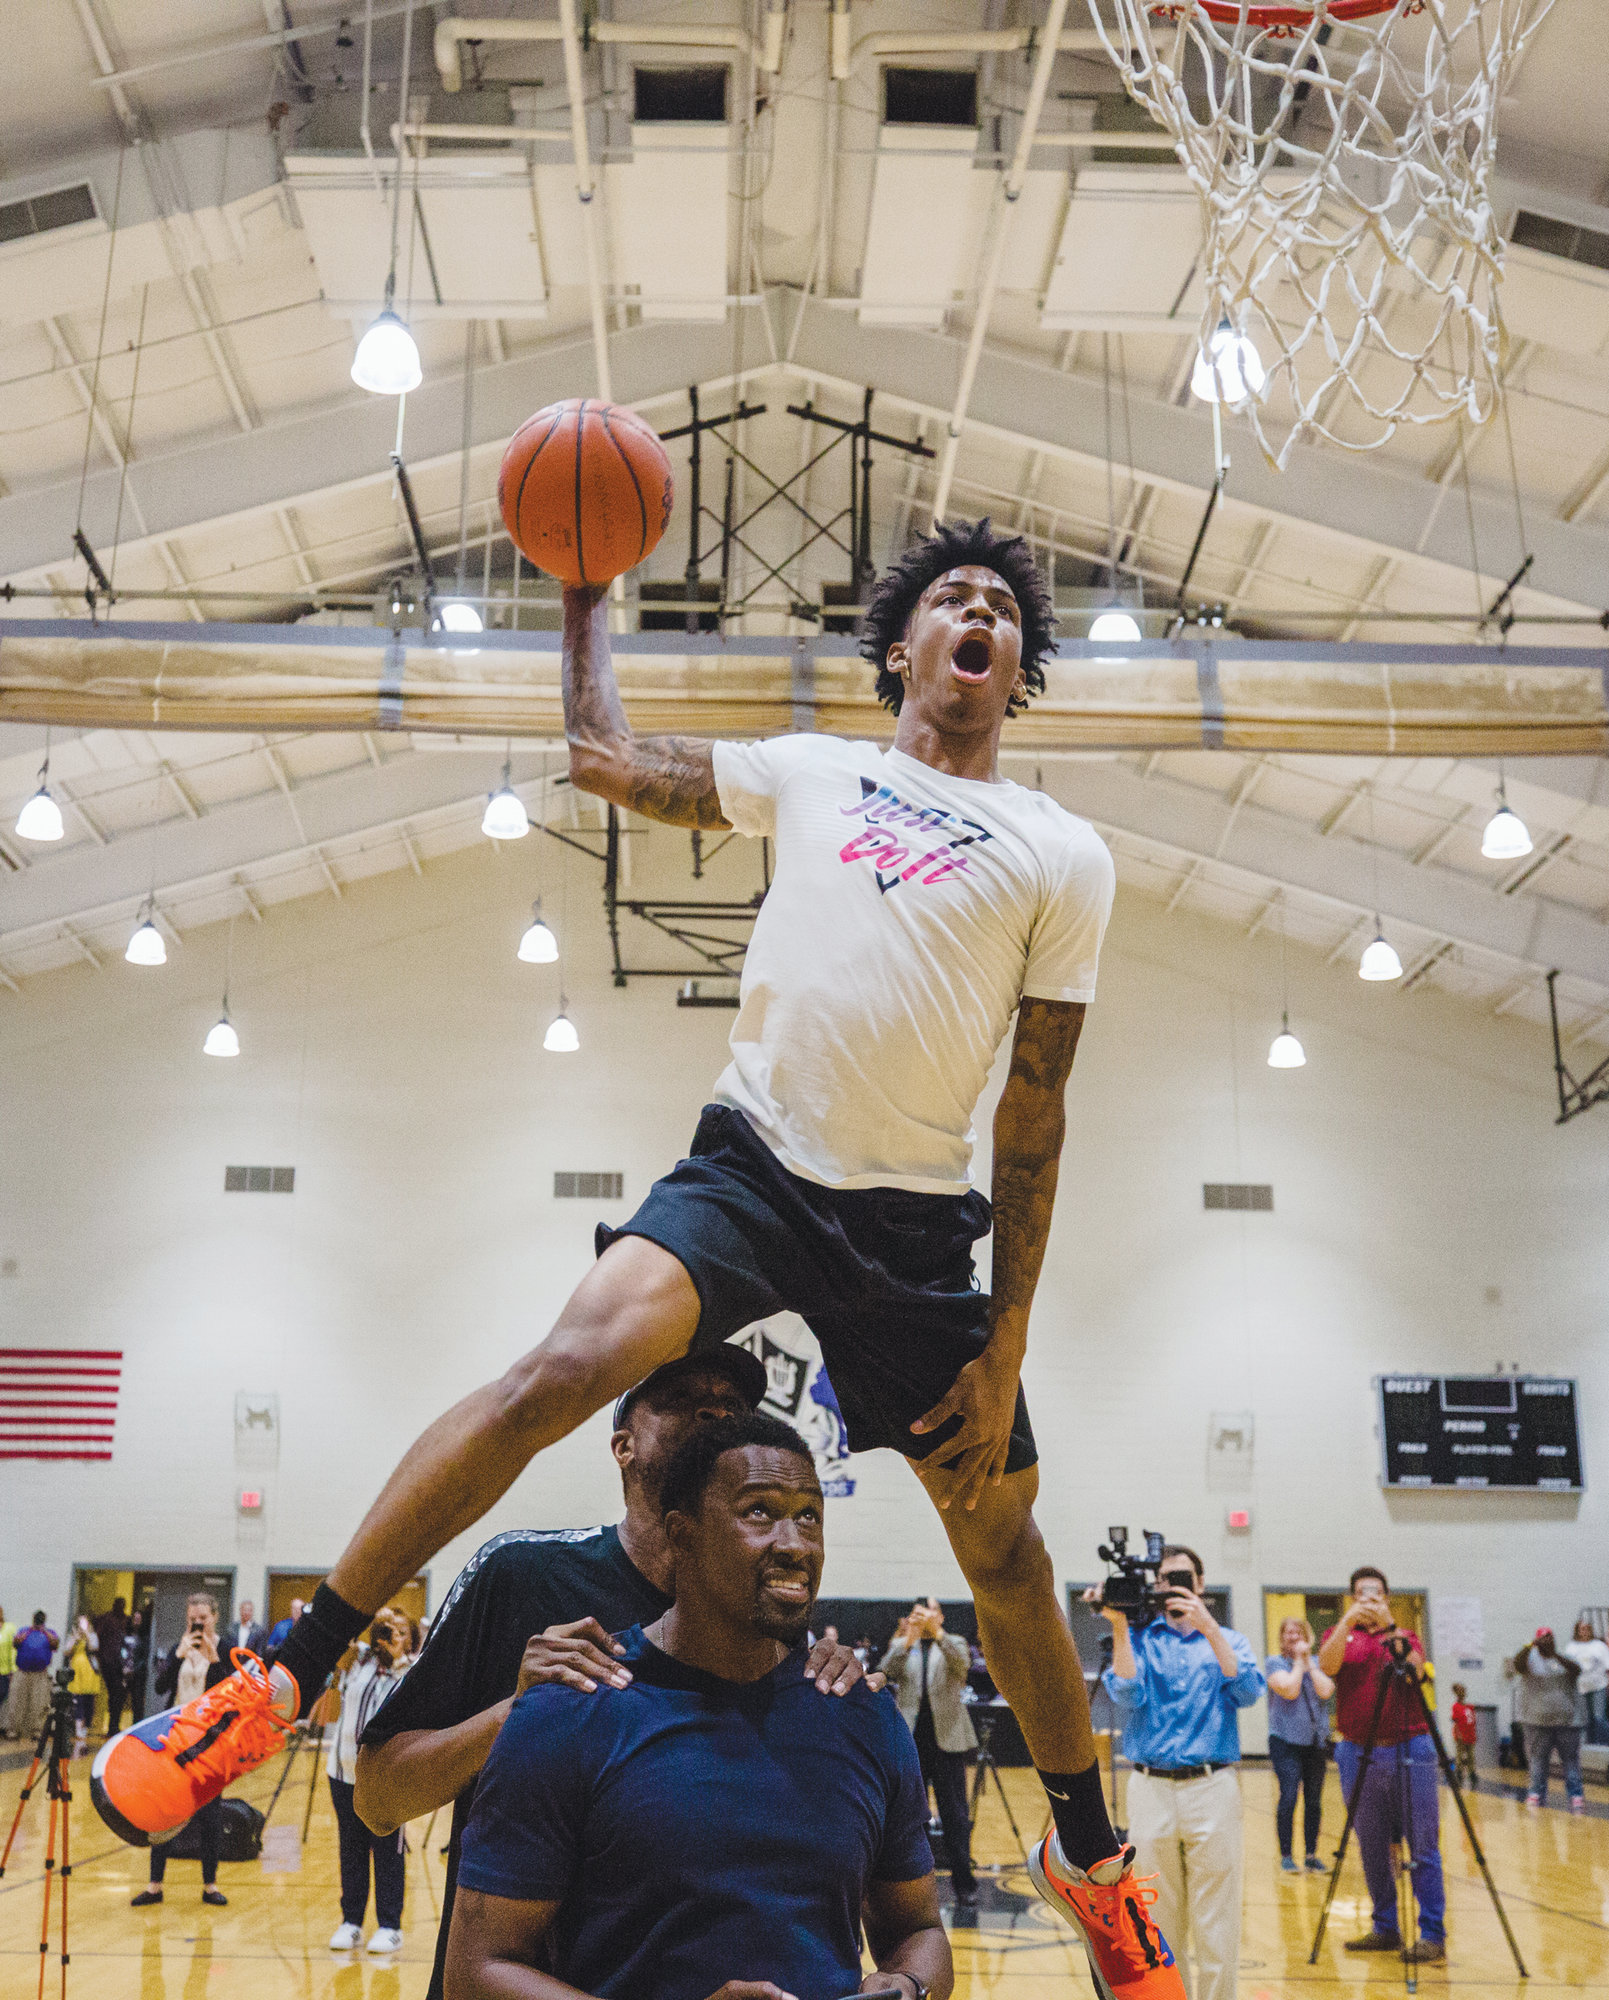 Former Crestwood standout Ja Morant goes over the top of two volunteers during a dunk demonstration on Monday at the Ja Morant Day celebration at Crestwood High School.